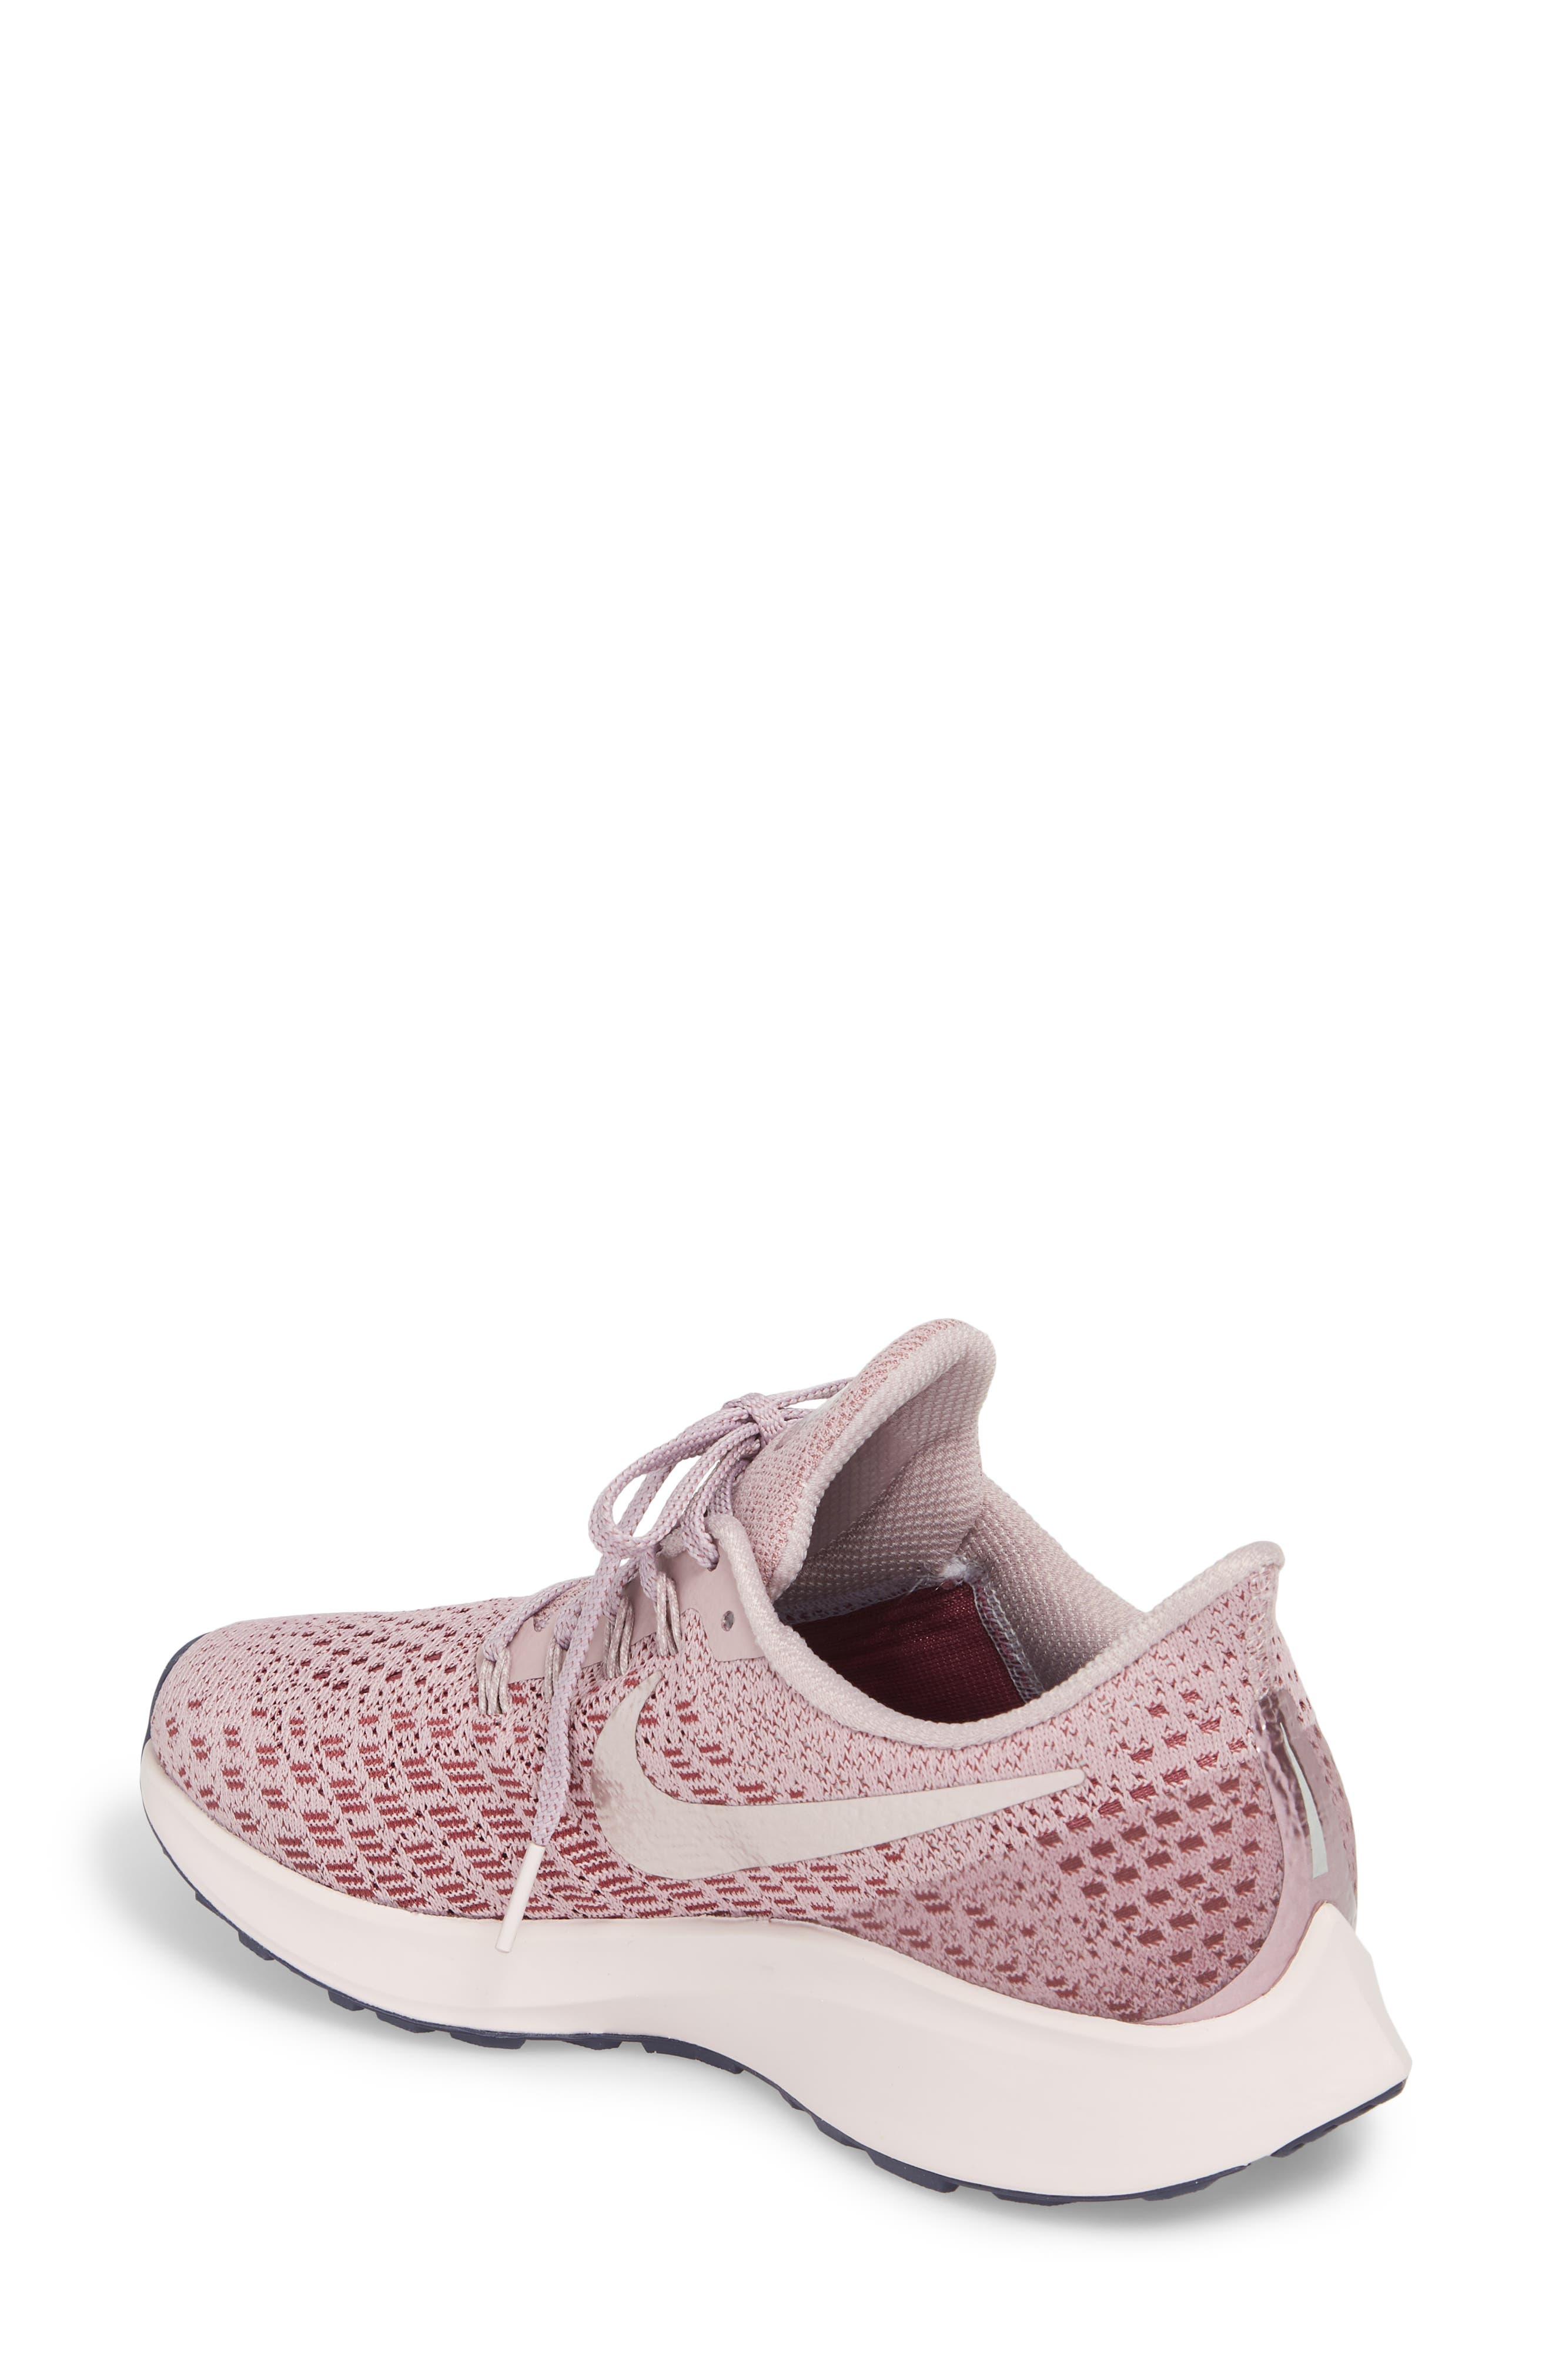 Air Zoom Pegasus 35 Running Shoe,                             Alternate thumbnail 2, color,                             ELEMENTAL ROSE/ BARELY ROSE